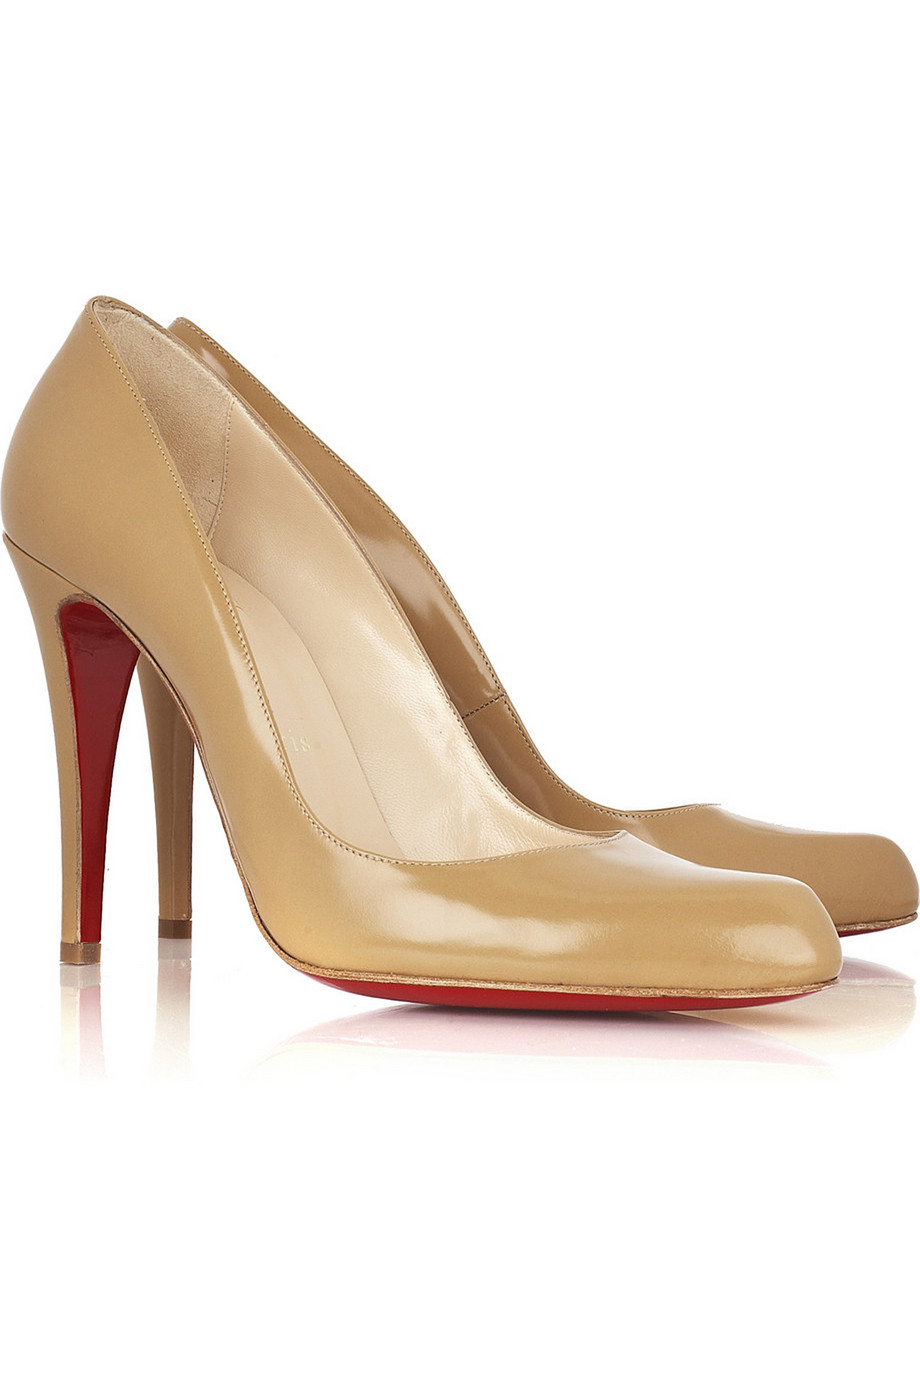 Christian Louboutin Décolleté 100 Leather Pumps, Sand, Women's US Size: 4, Size: 34.5